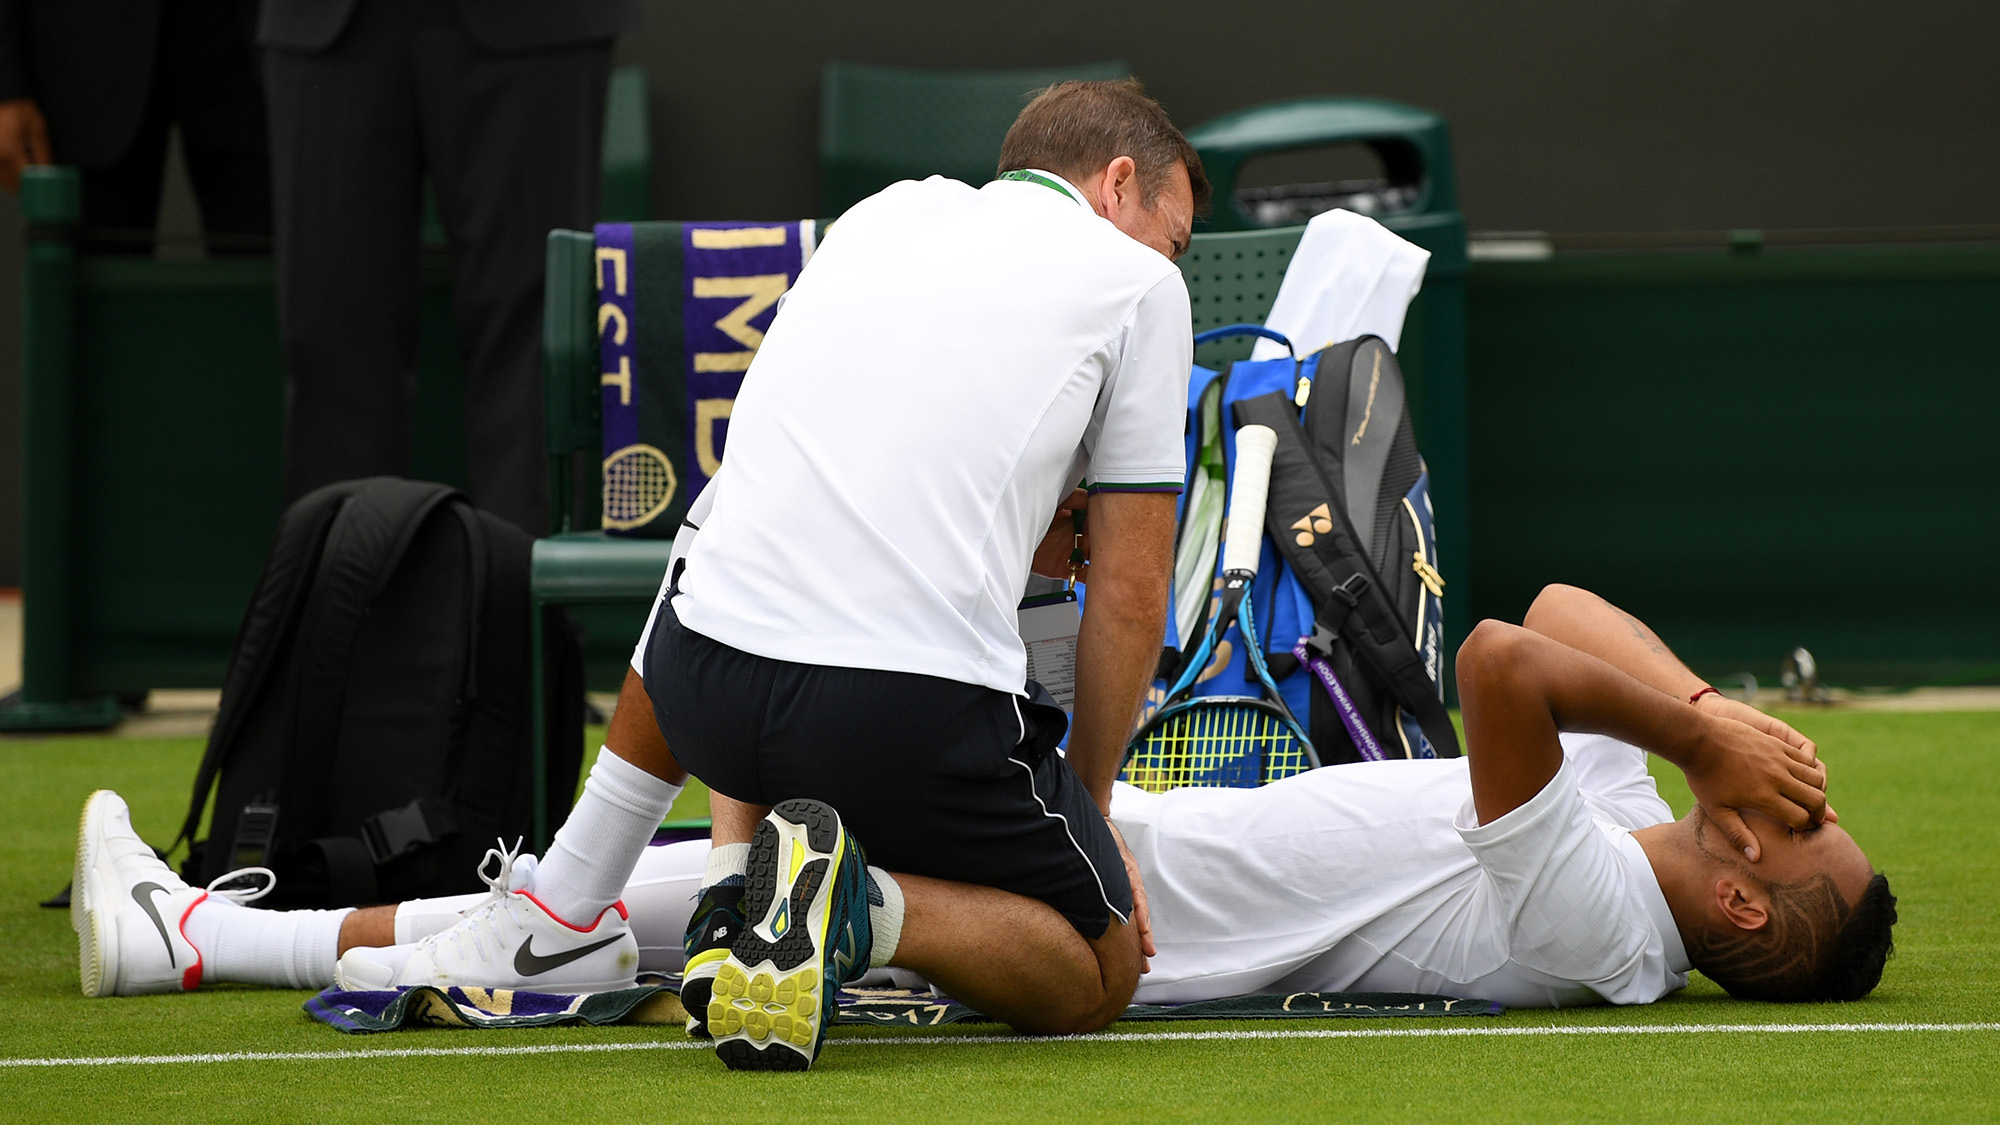 Nick Kyrgios may undergo hip surgery in the future